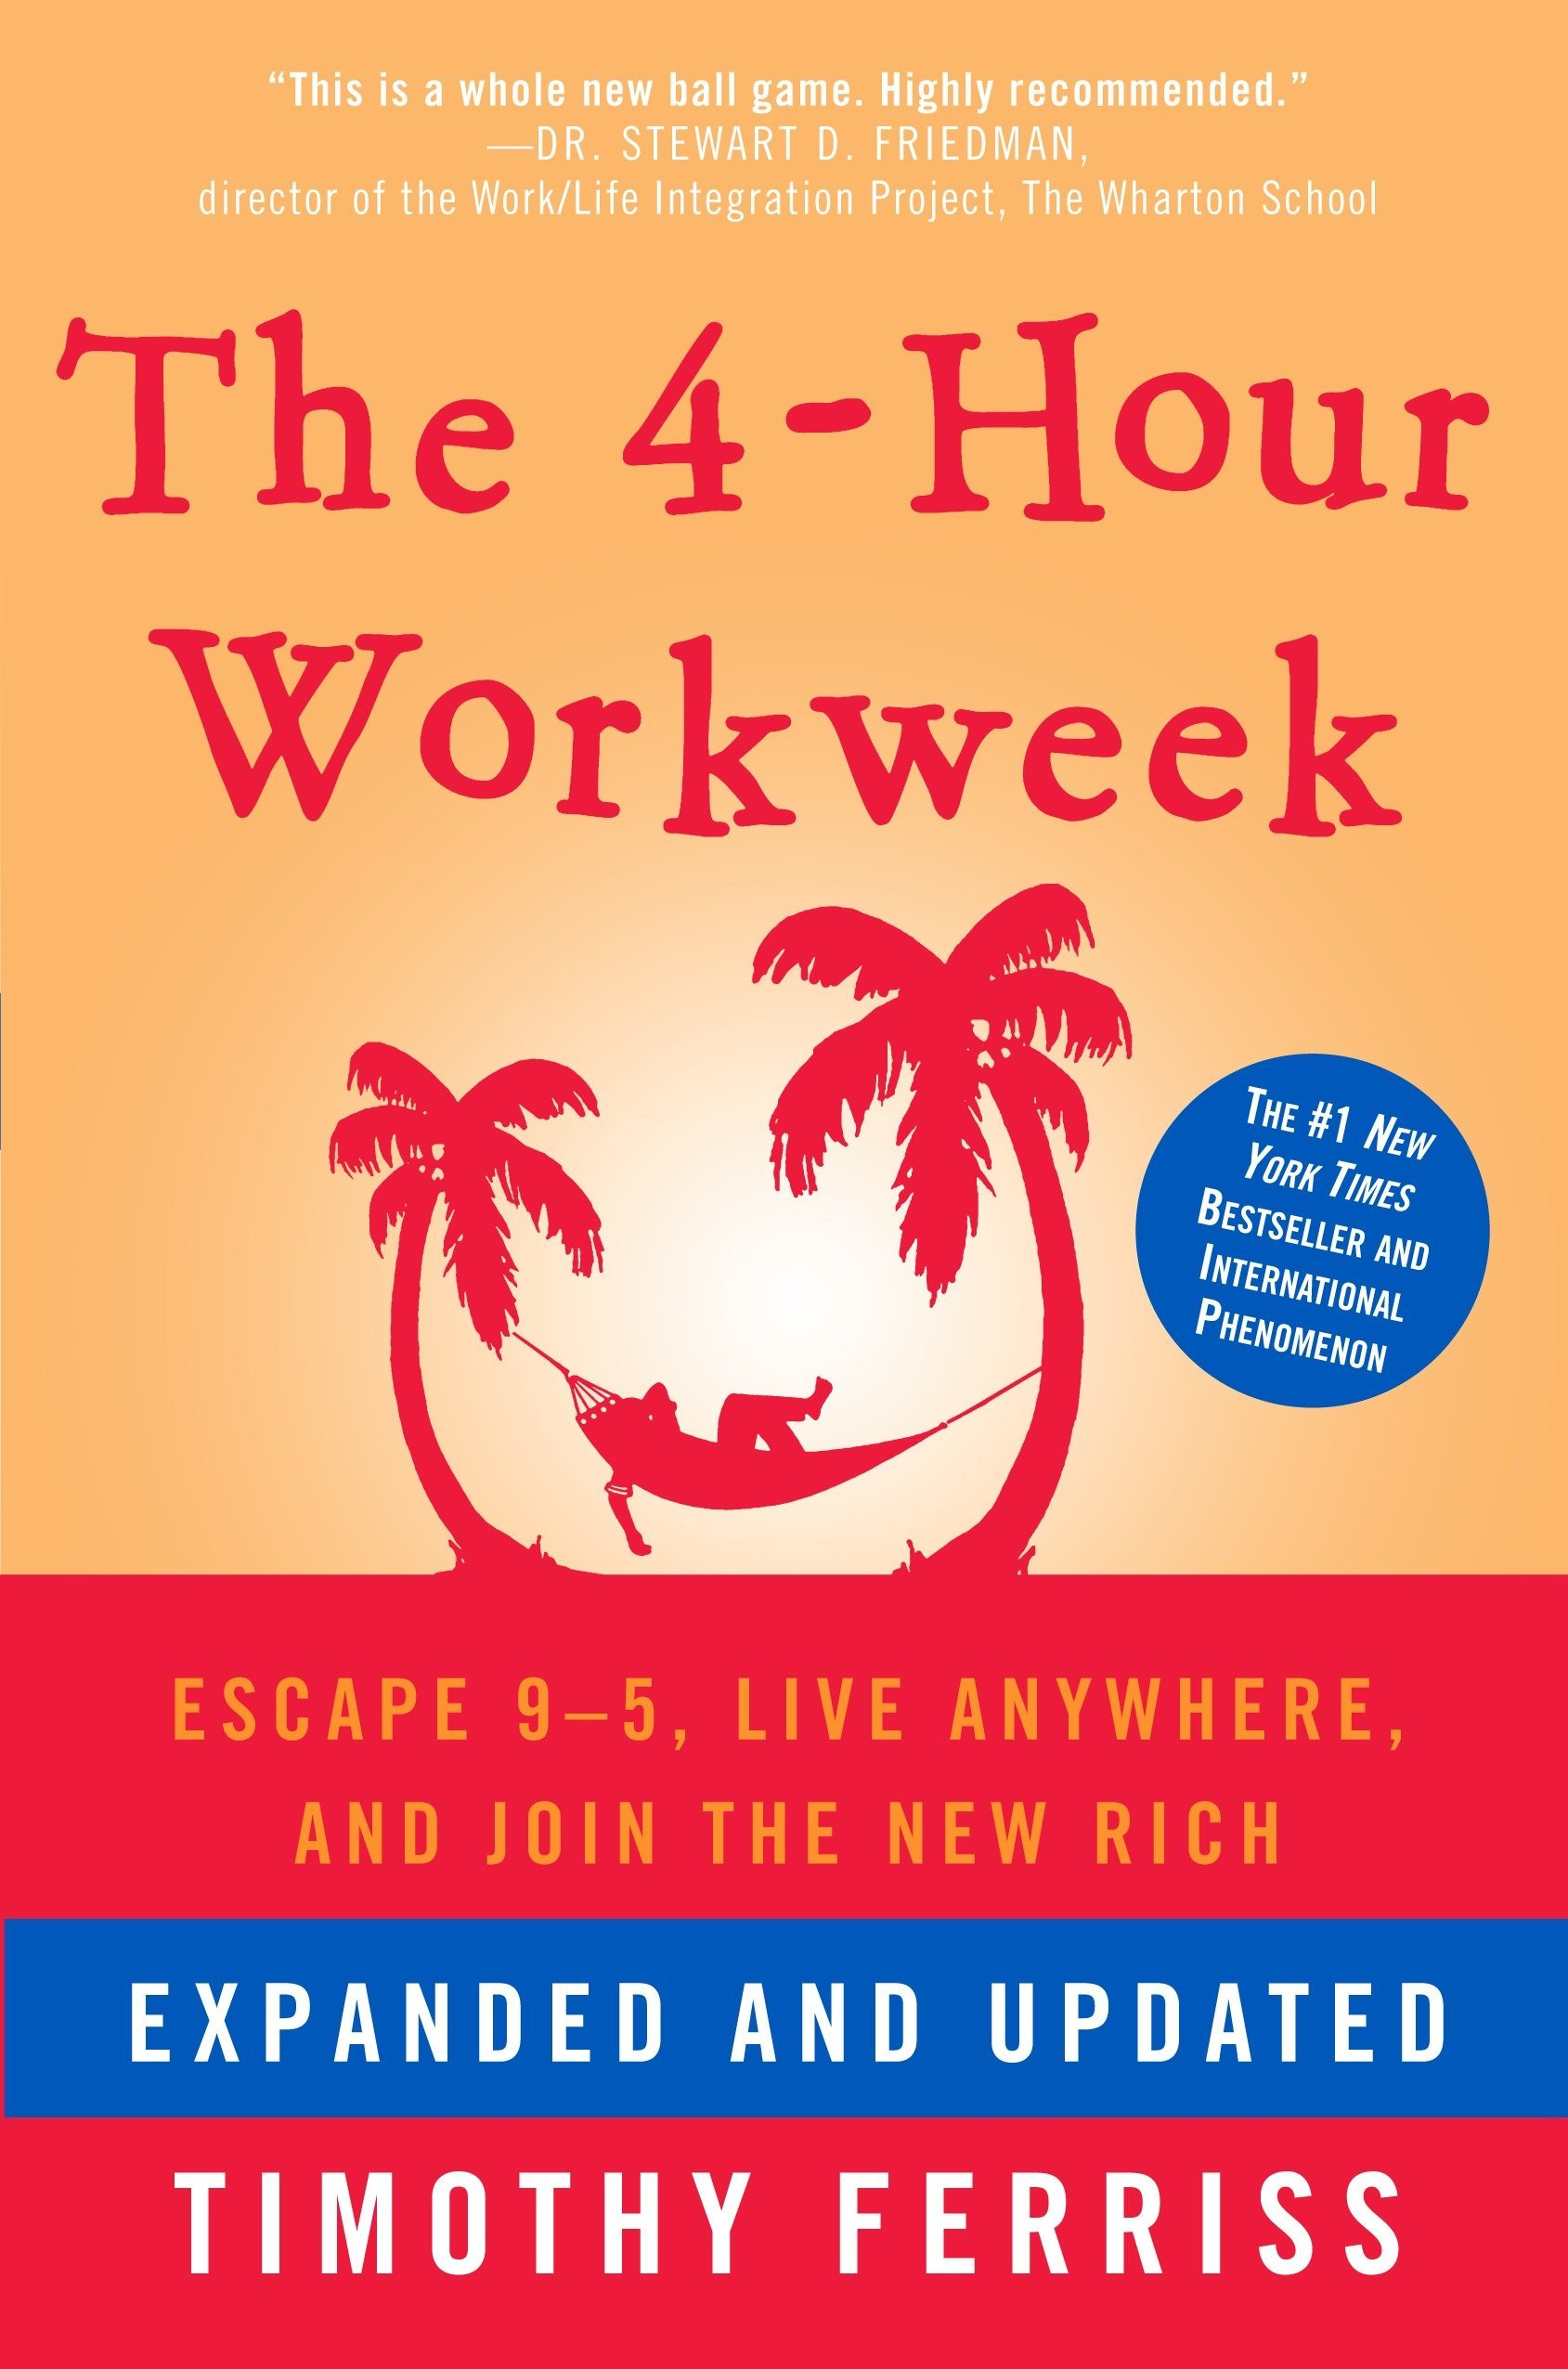 The 4-Hour Workweek: Escape 9-5, Live Anywhere, and Join the New Rich  If your dream is escaping the rat race, high-end world travel, monthly five-figure income with zero management or just living more and working less then this audiobook is the blueprint. Forget your tired, old retirement concepts and throw out that deferred-life plan - there's no need to wait and every reason not to. You can have it all! This audiobook is the compass for a new and revolutionary world. Start living now!   - Tim ferriss